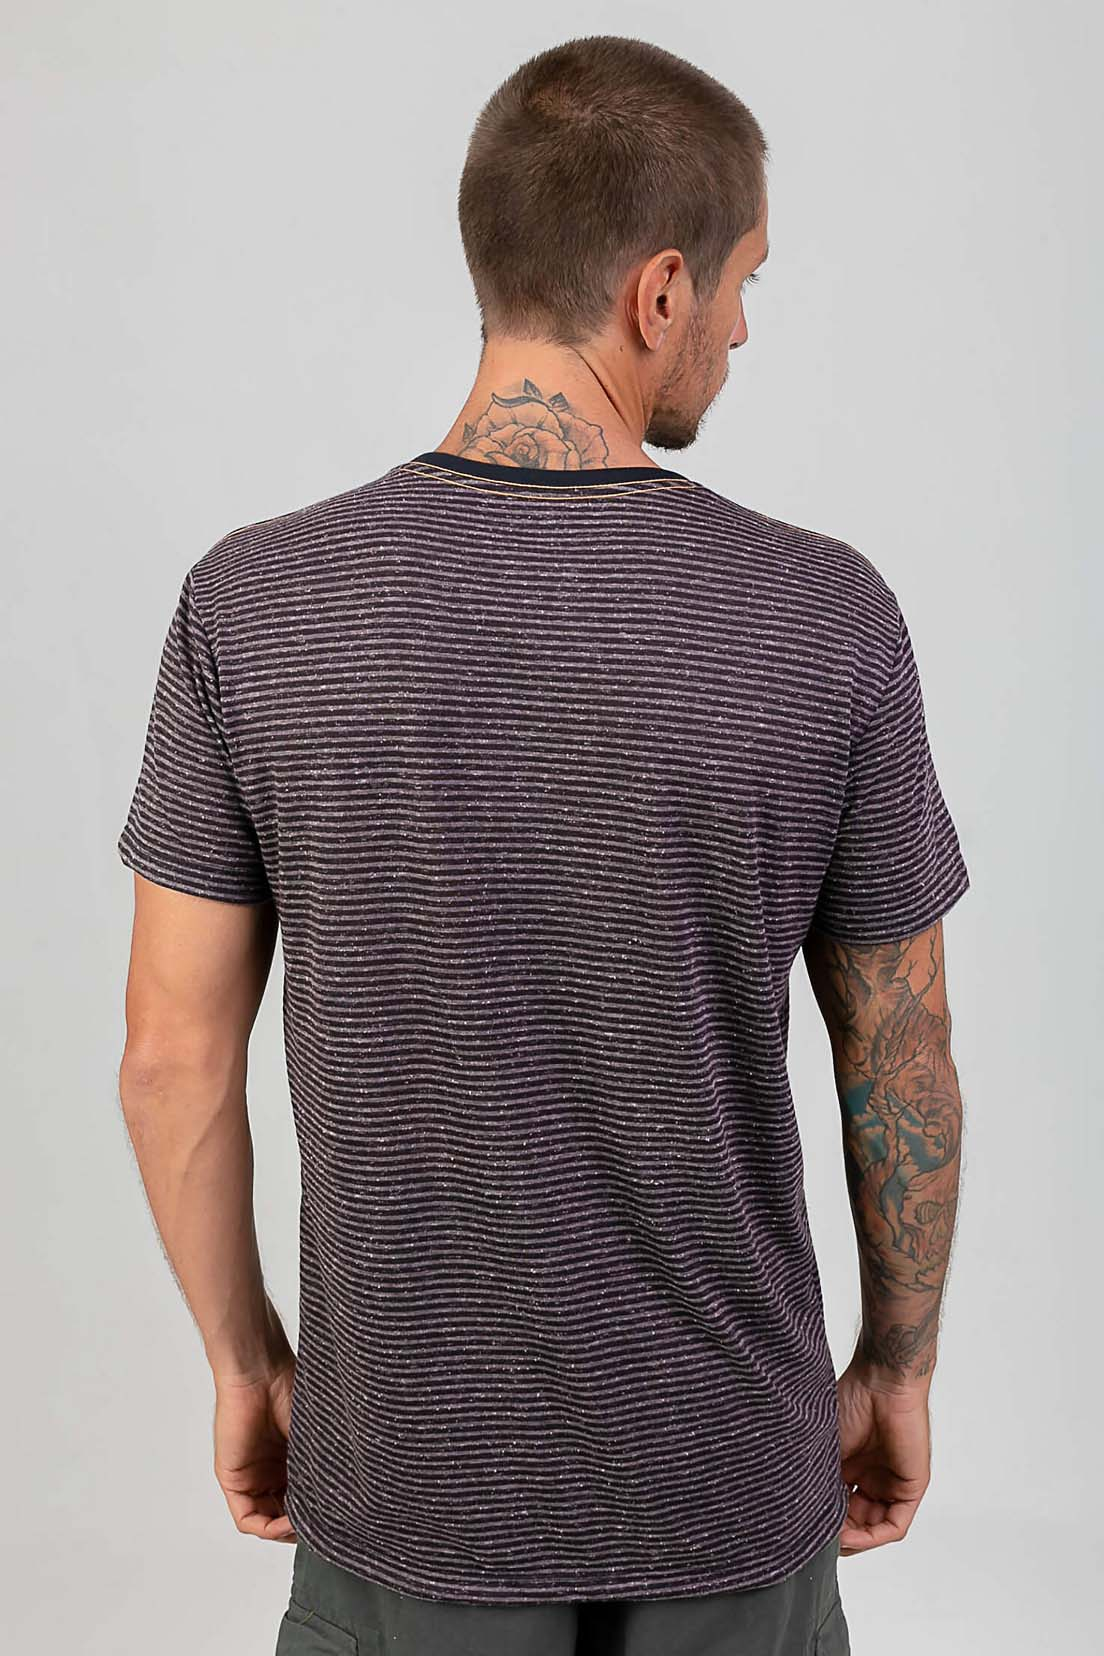 T-Shirt Be Simple Listrado melty  - melty surf & Co.